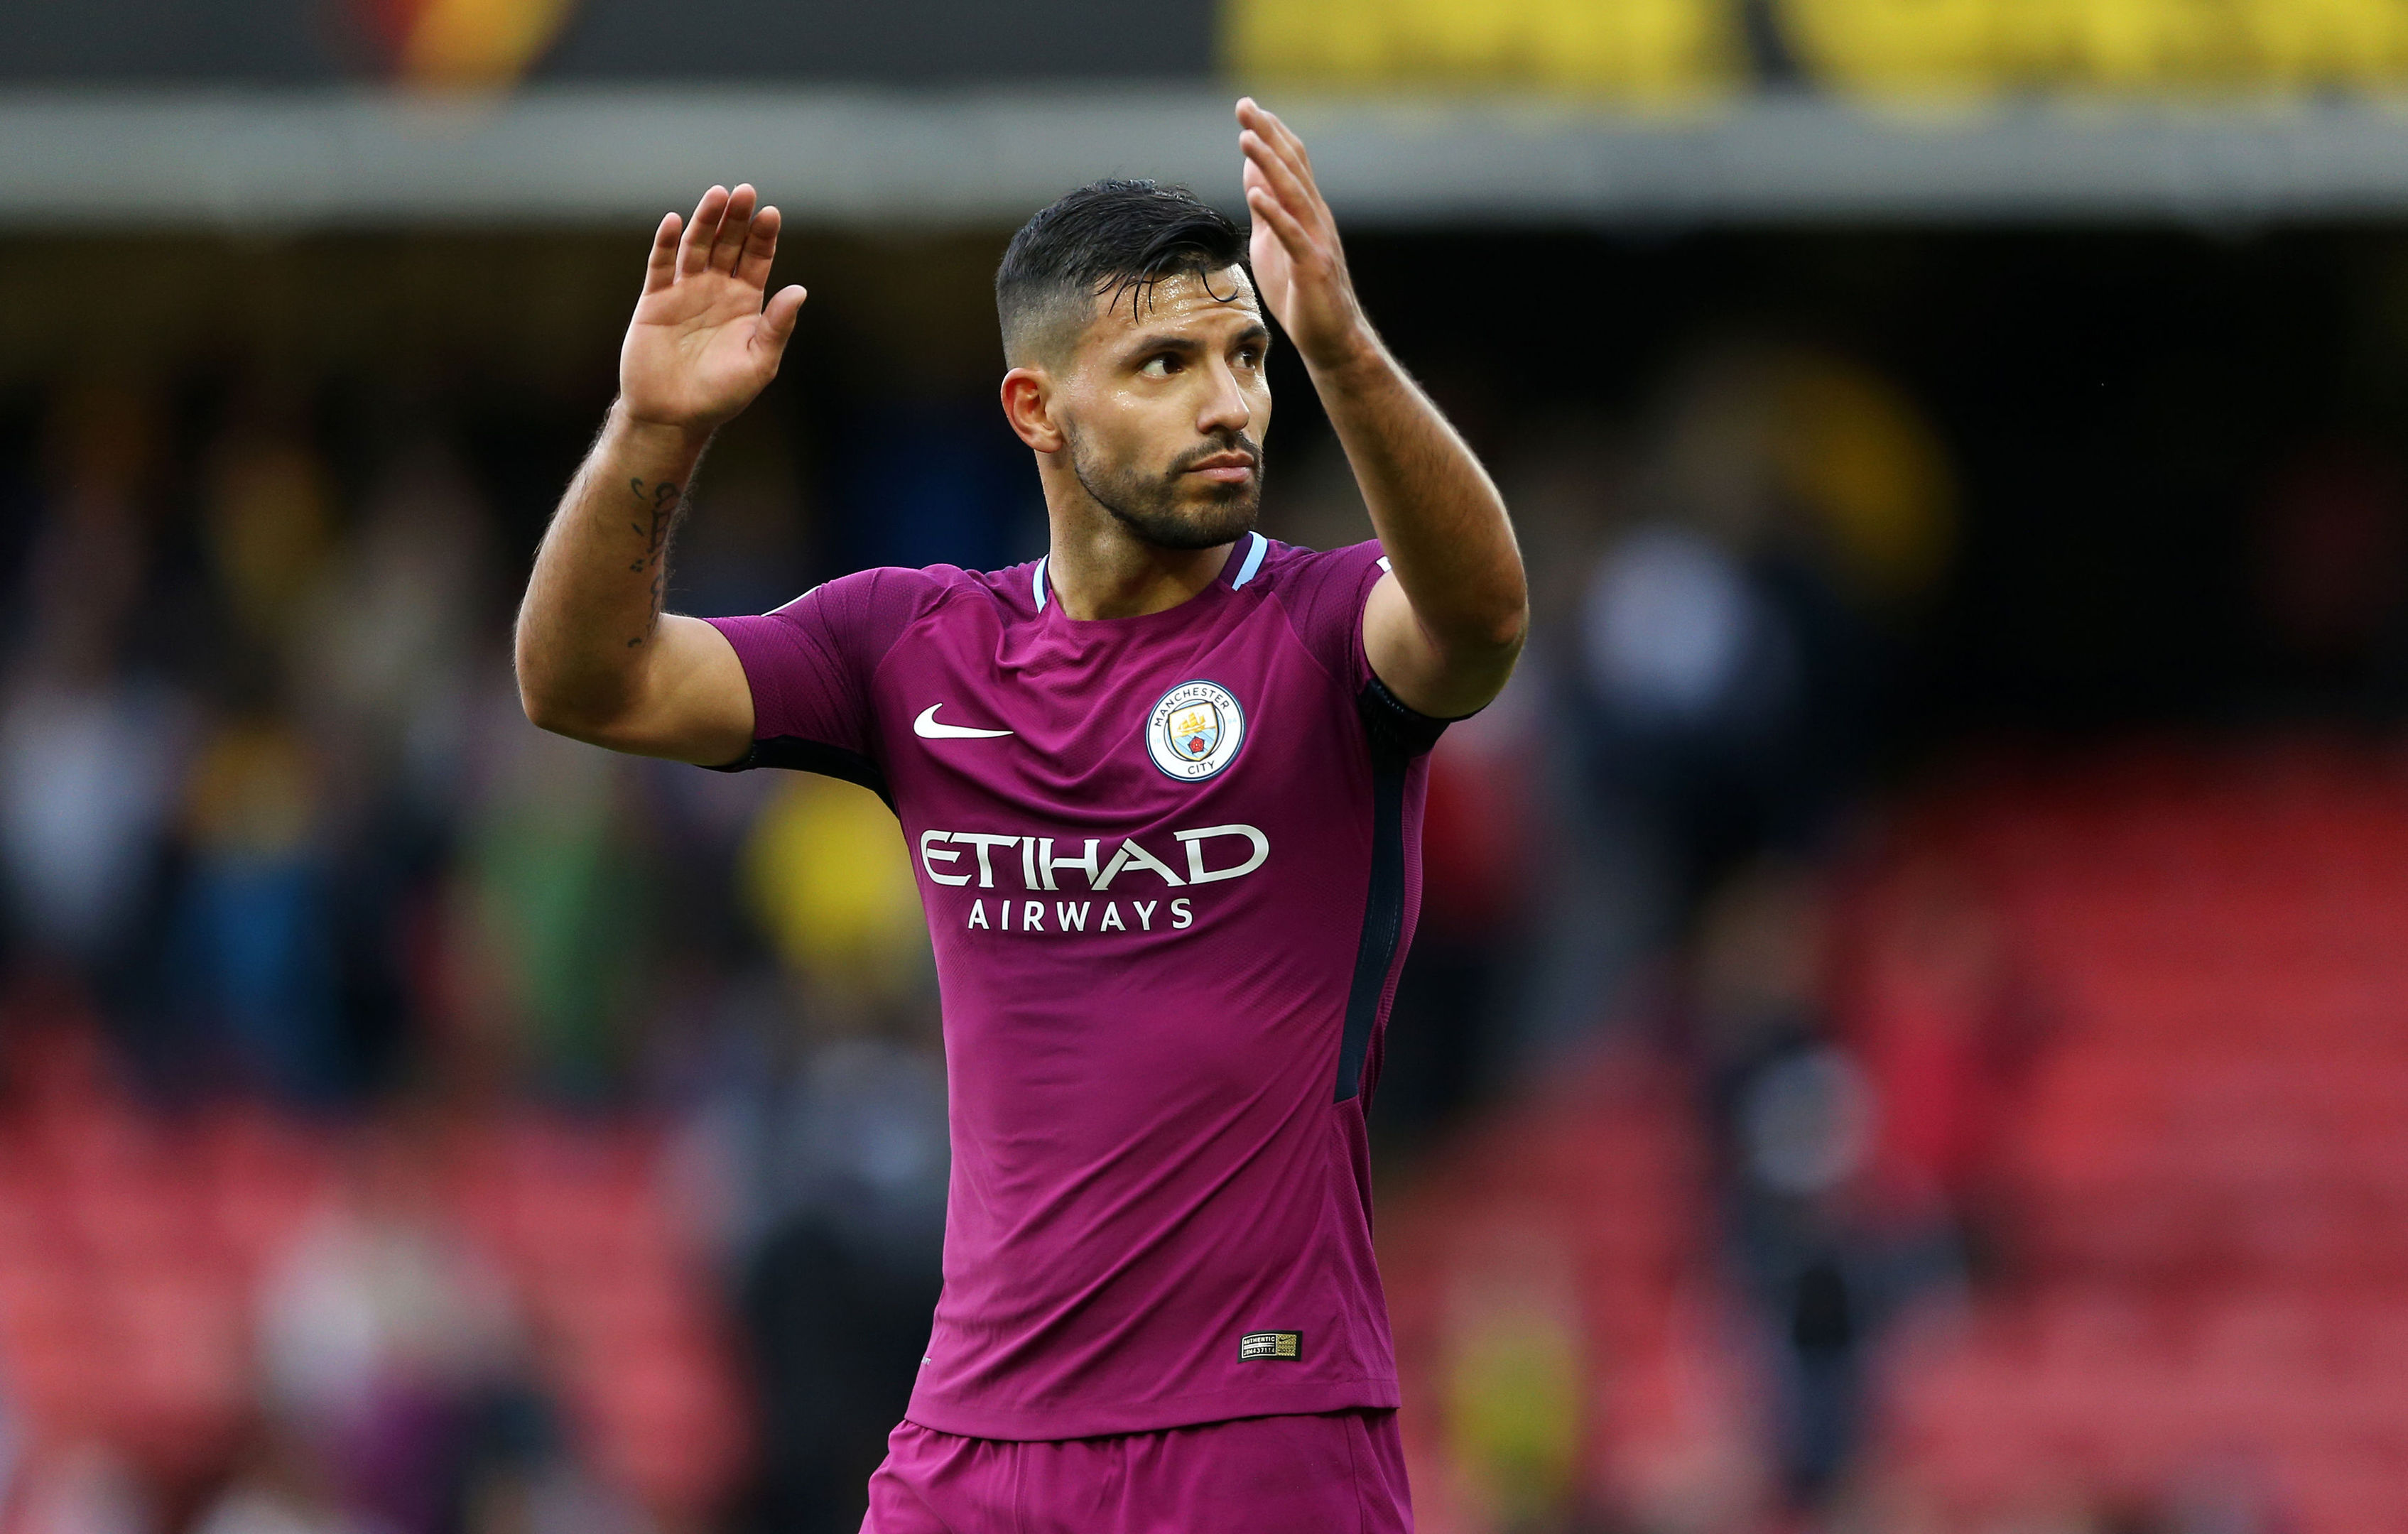 Manchester City's Sergio Aguero (Nigel French/PA Wire)